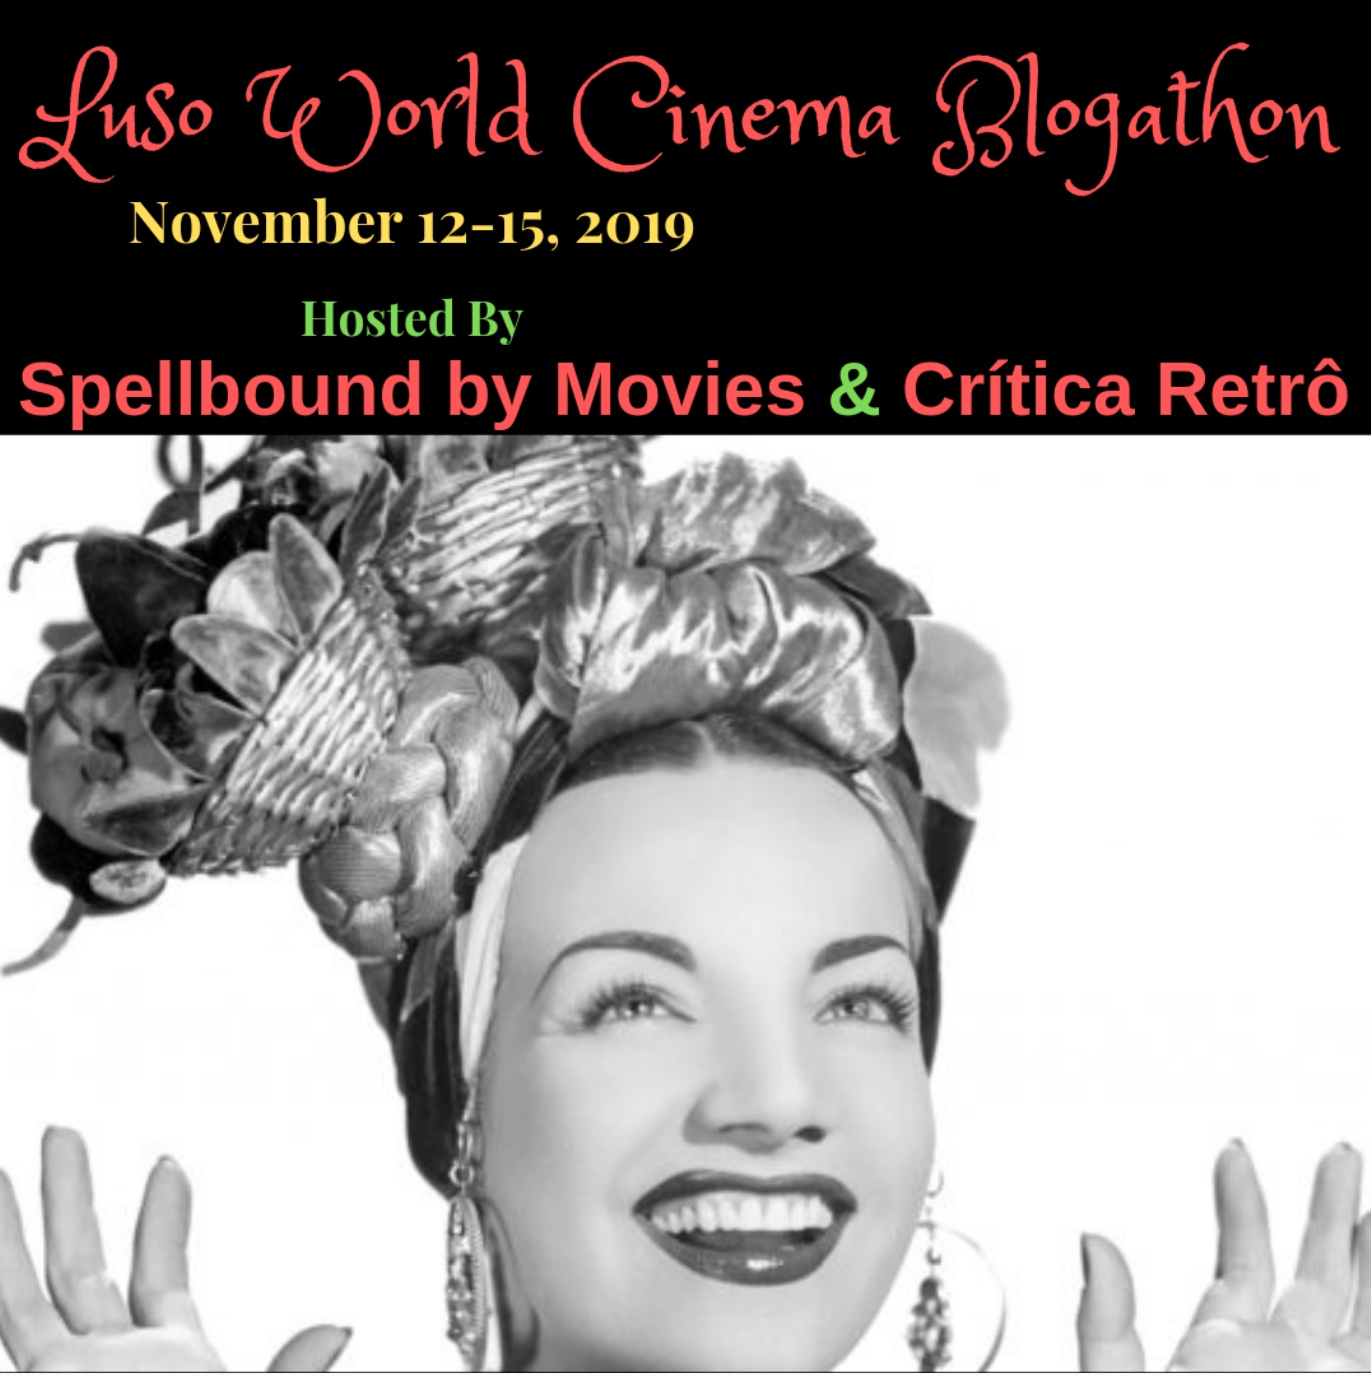 The Luso World Cinema Blogathon